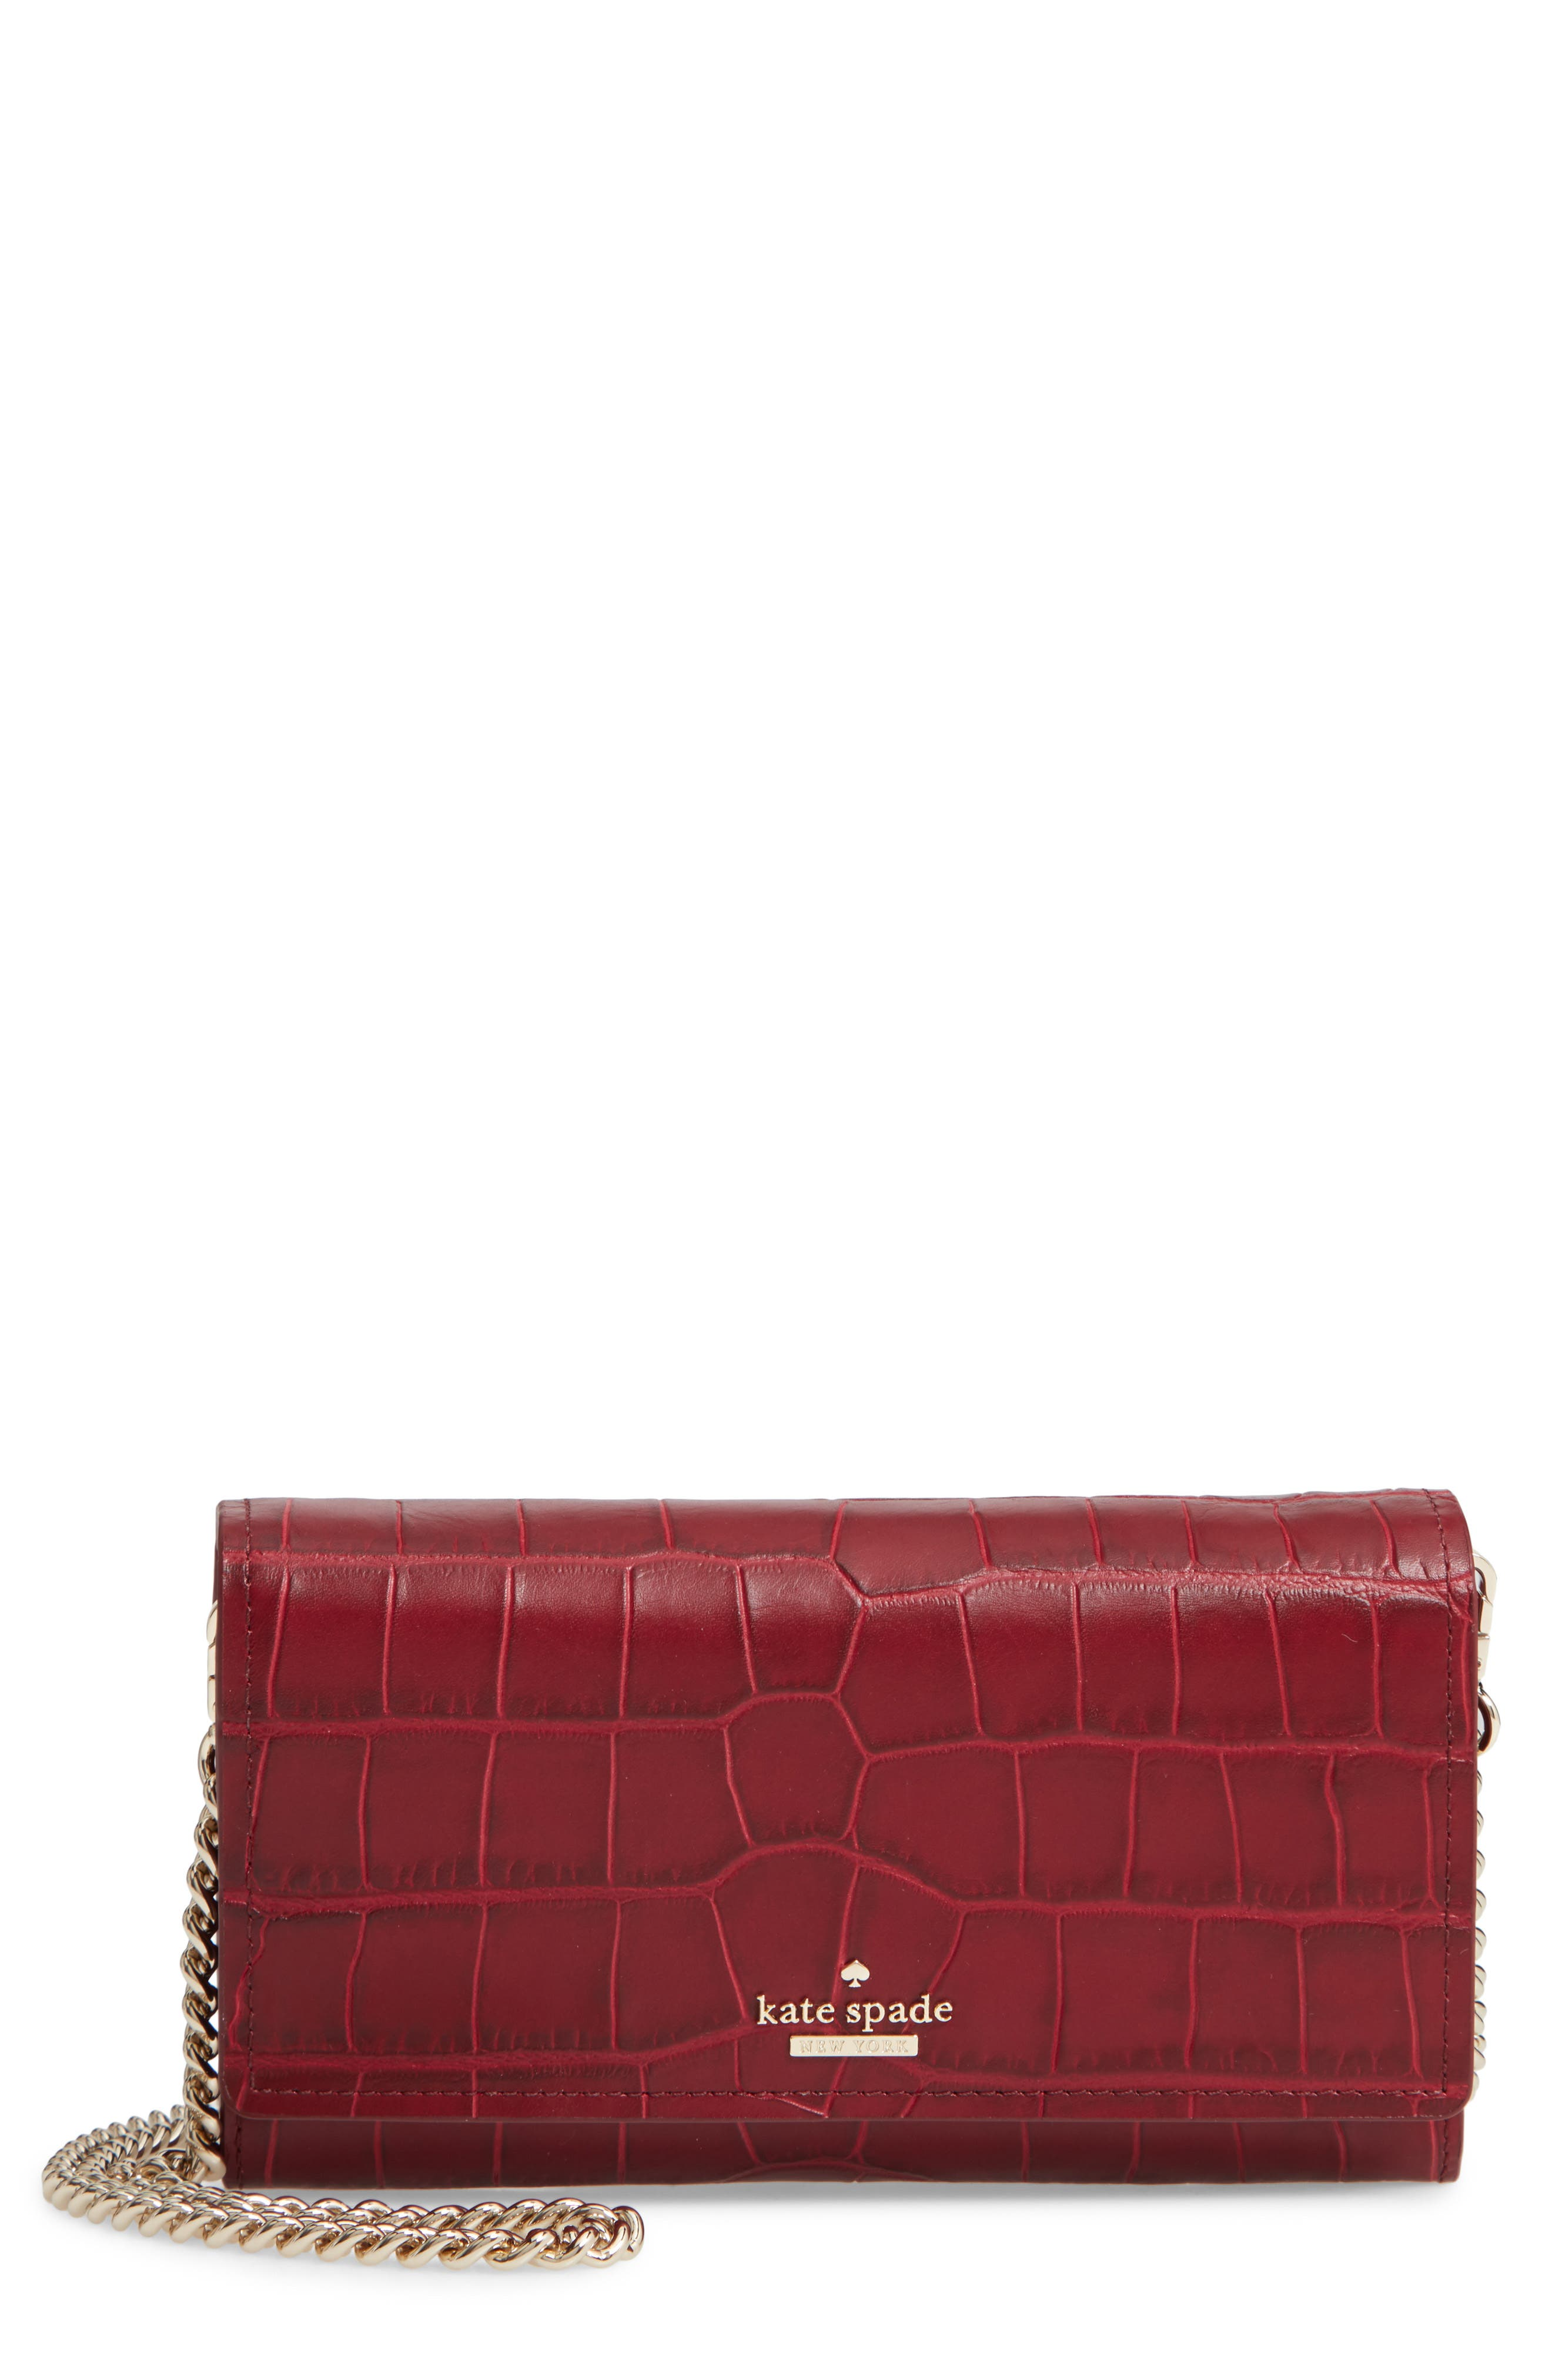 murray street luxe franny leather wallet on a chain, Main, color, CHILI PEPPER